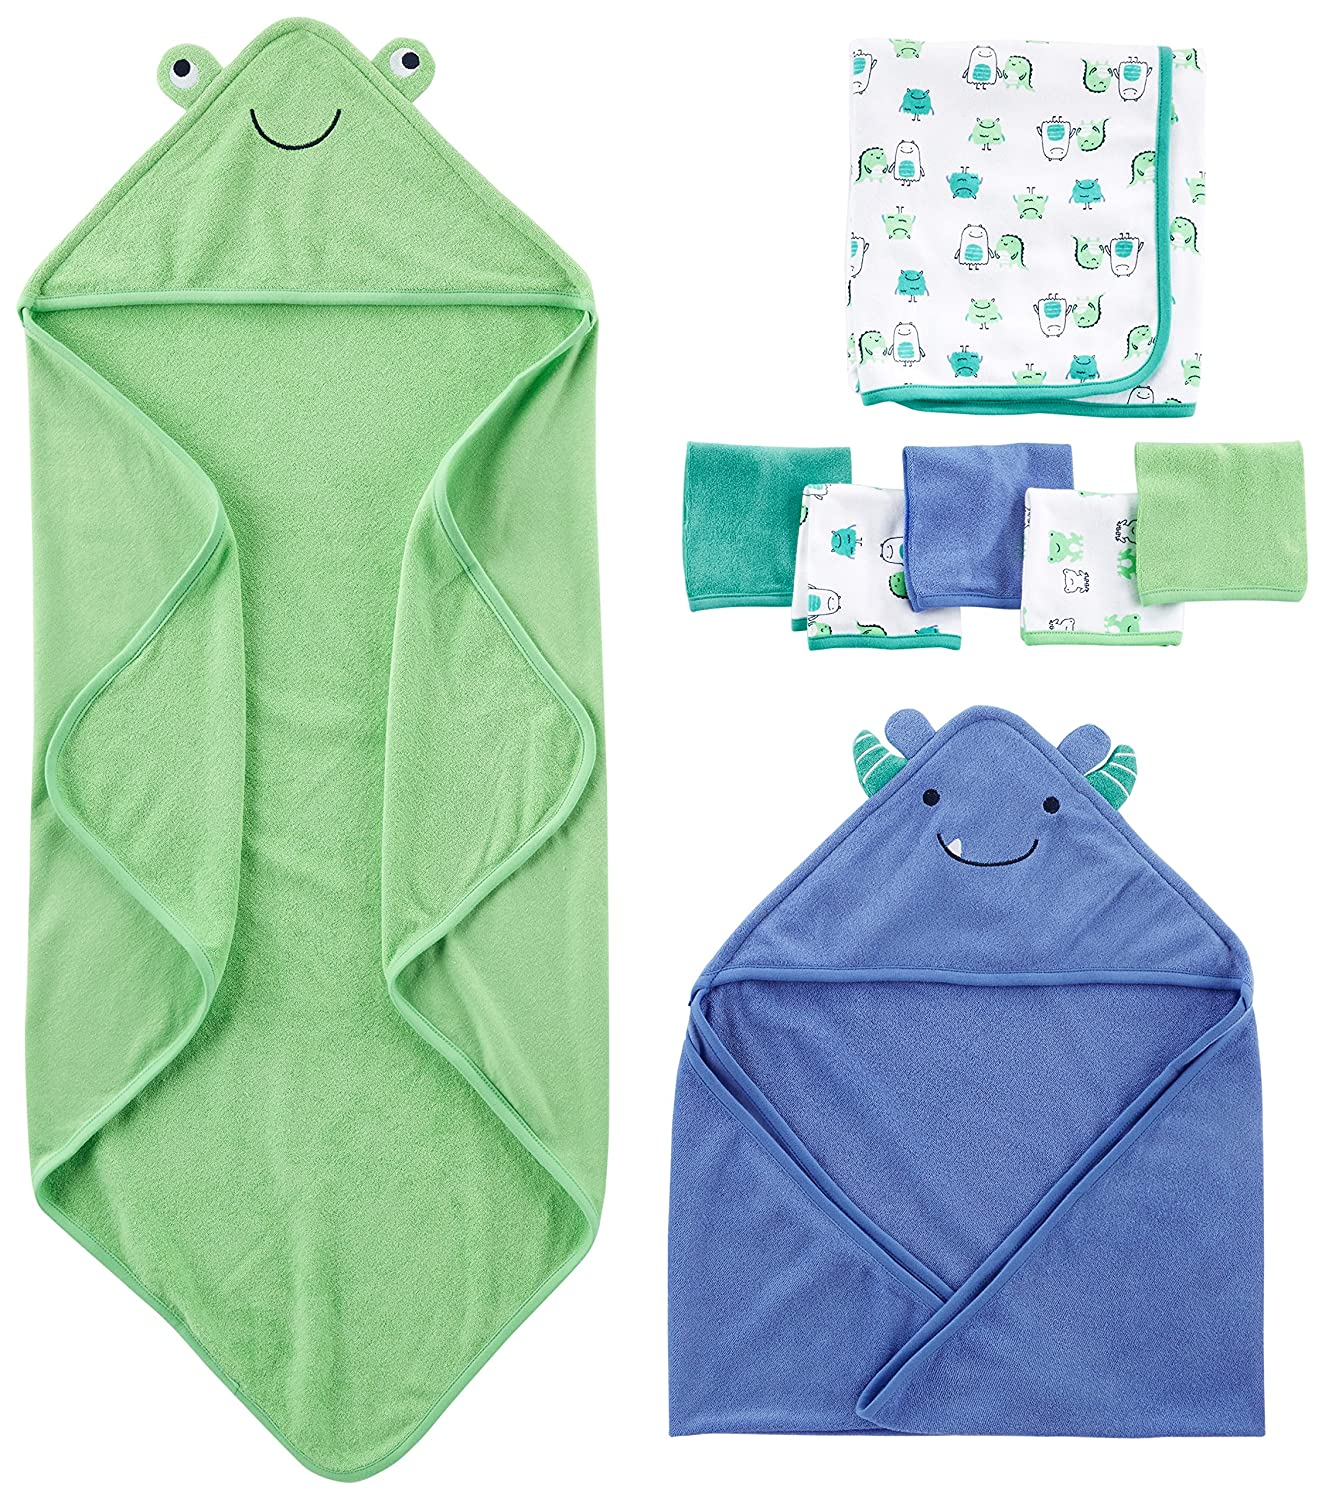 Simple Joys by Carter's Baby Boys' 8-Piece Towel and Washcloth Set Blue/Green One Size Simple Joys by Carter' s A26G032